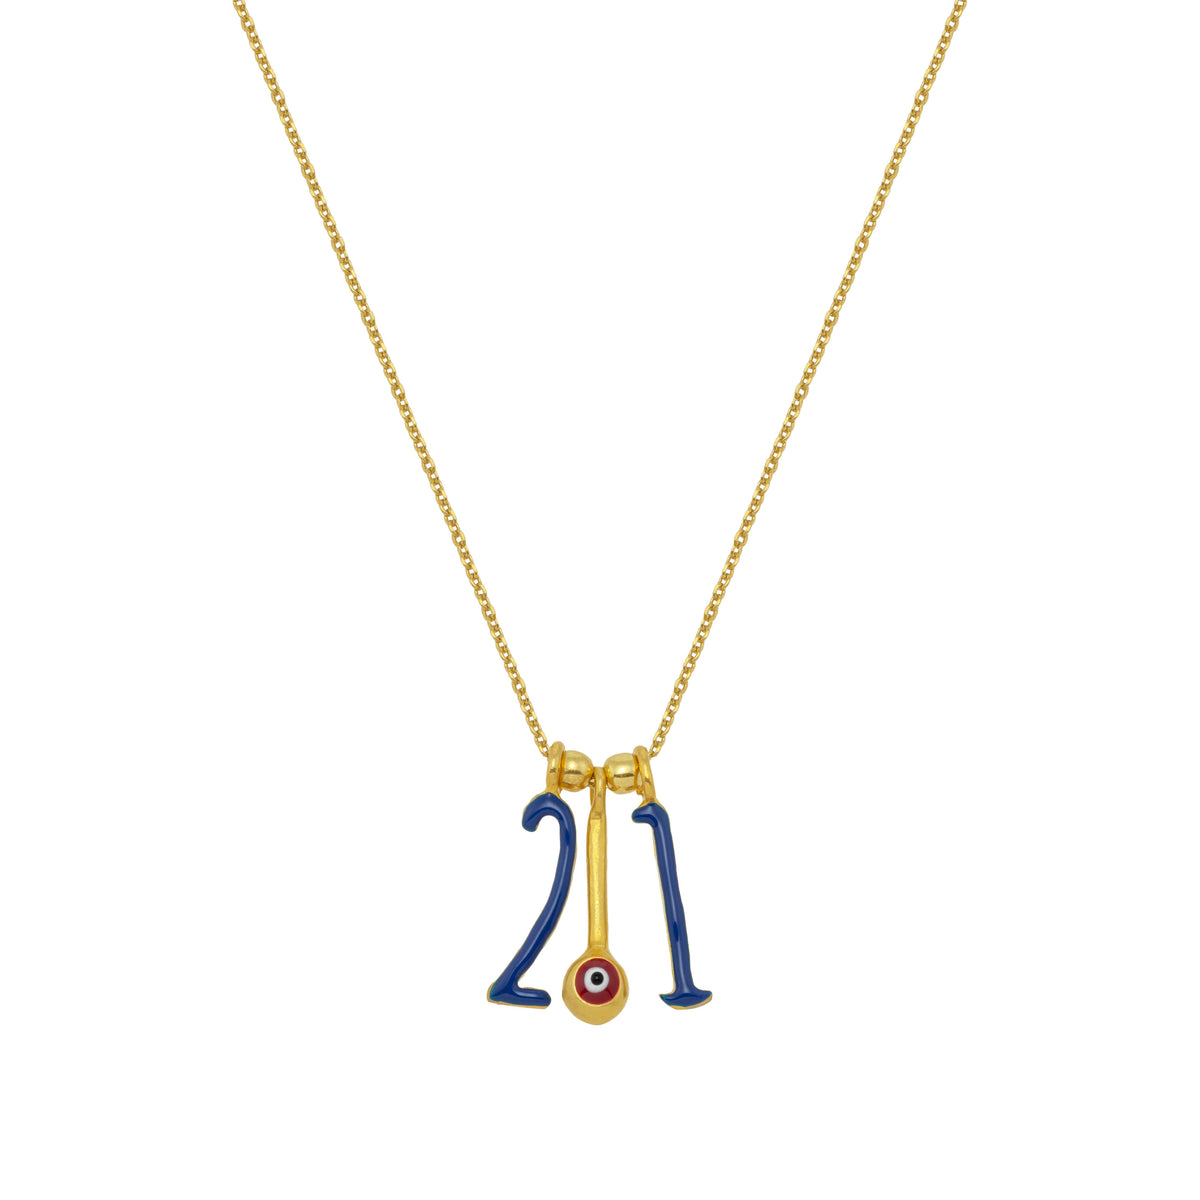 CHARMS: 2021 | Blue Enamel | 18K Gold Plated Silver